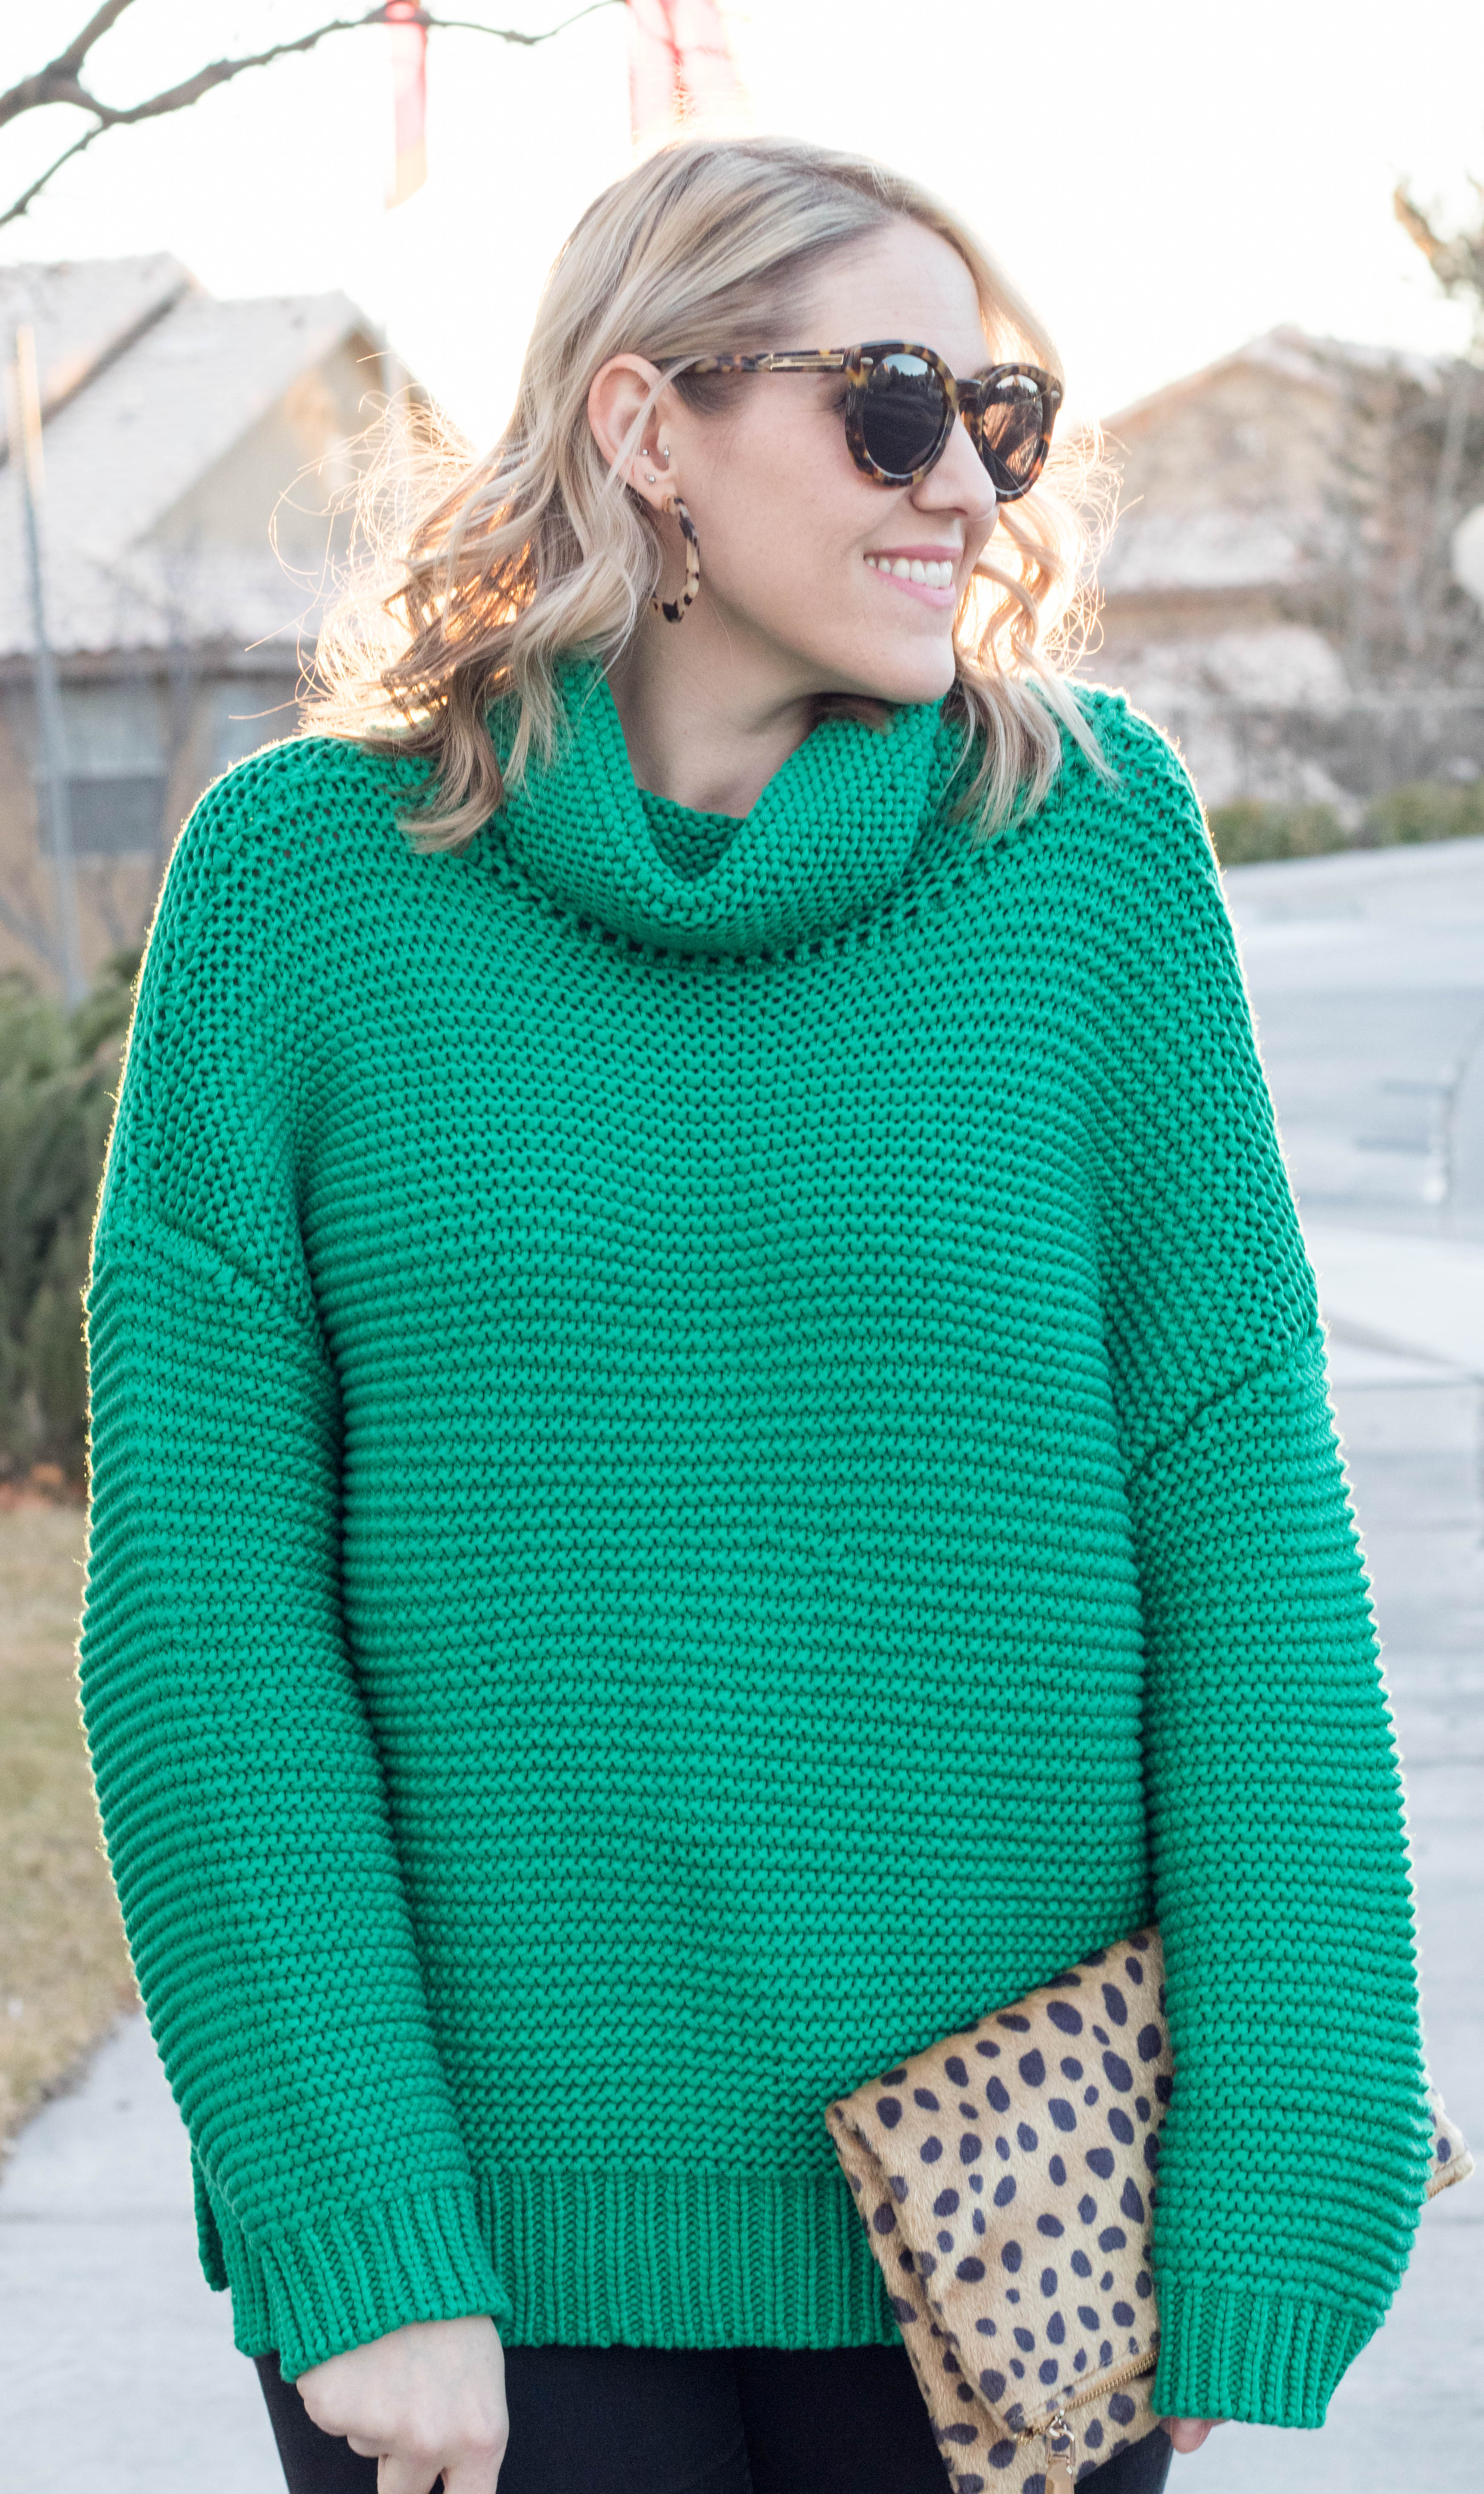 oversized turtleneck sweater for winter #sweater #vicidolls #winterstyle